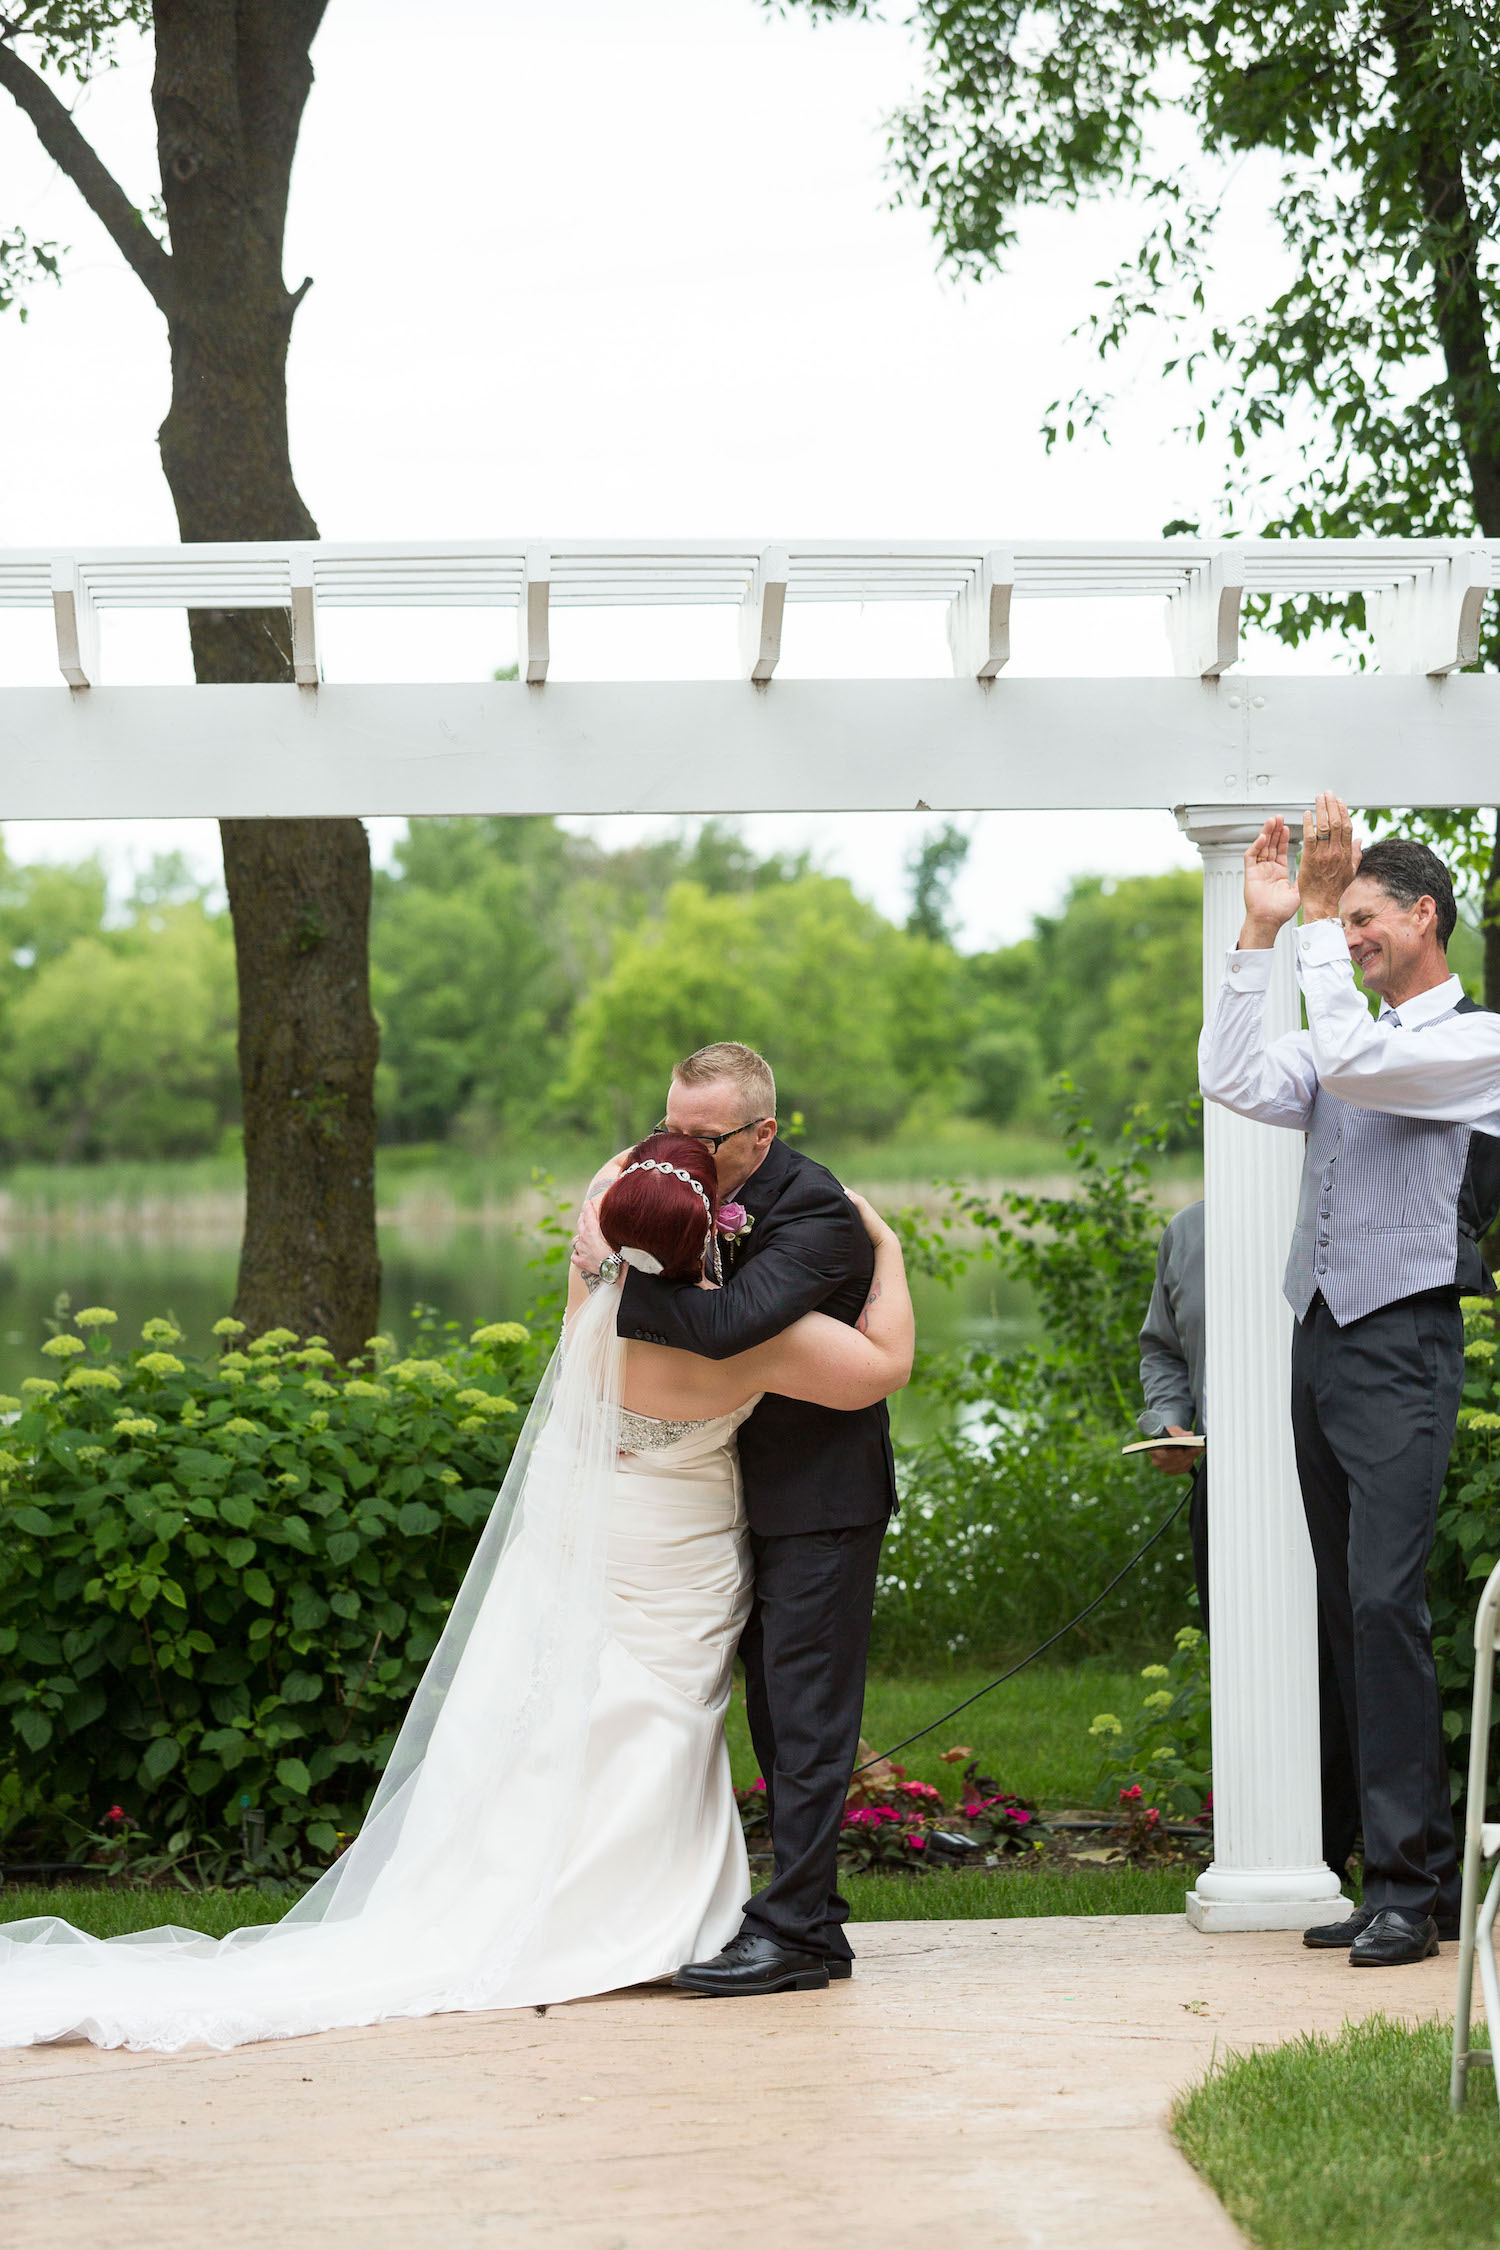 Cindyrella's Garden outdoor ceremony by the lake with a redhead bride, dip kiss